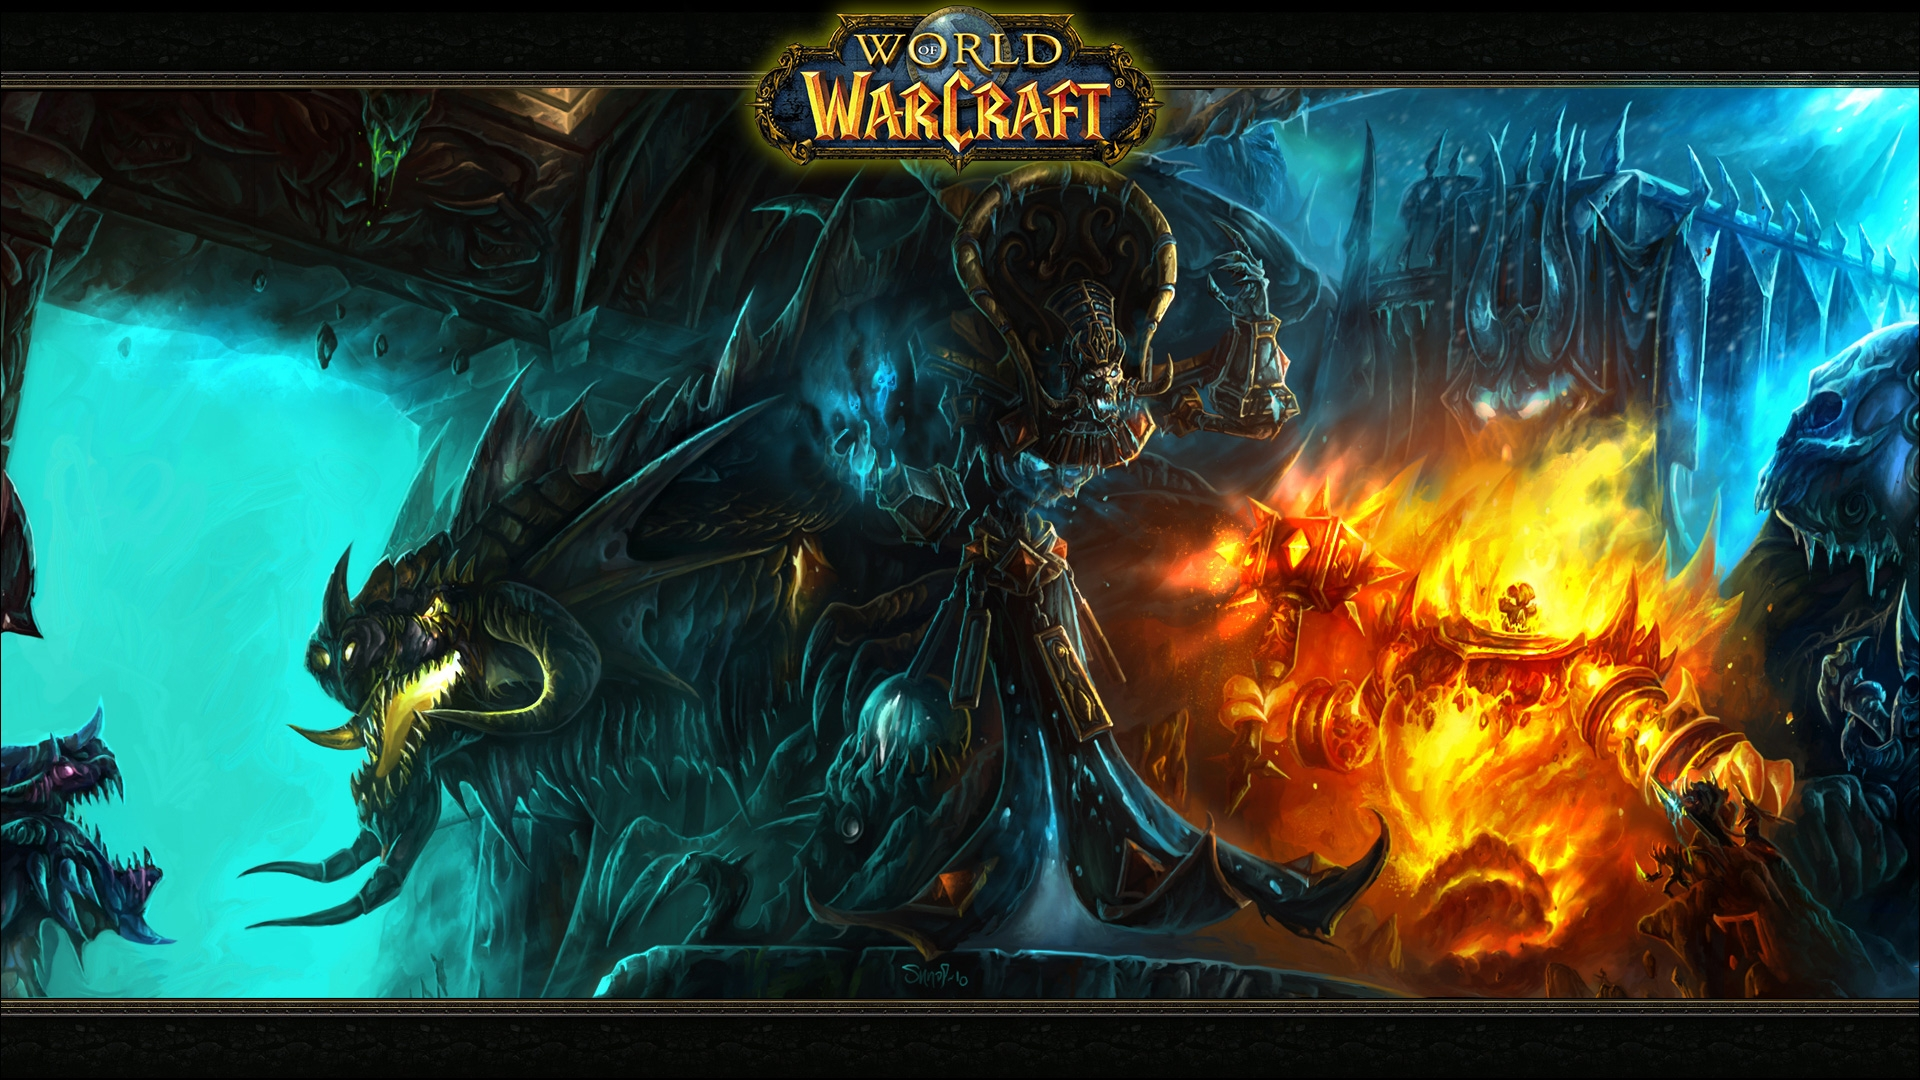 Download Wallpaper 1920x1080 World Of Warcraft Monsters Characters Game Full Hd 1080p Hd Background